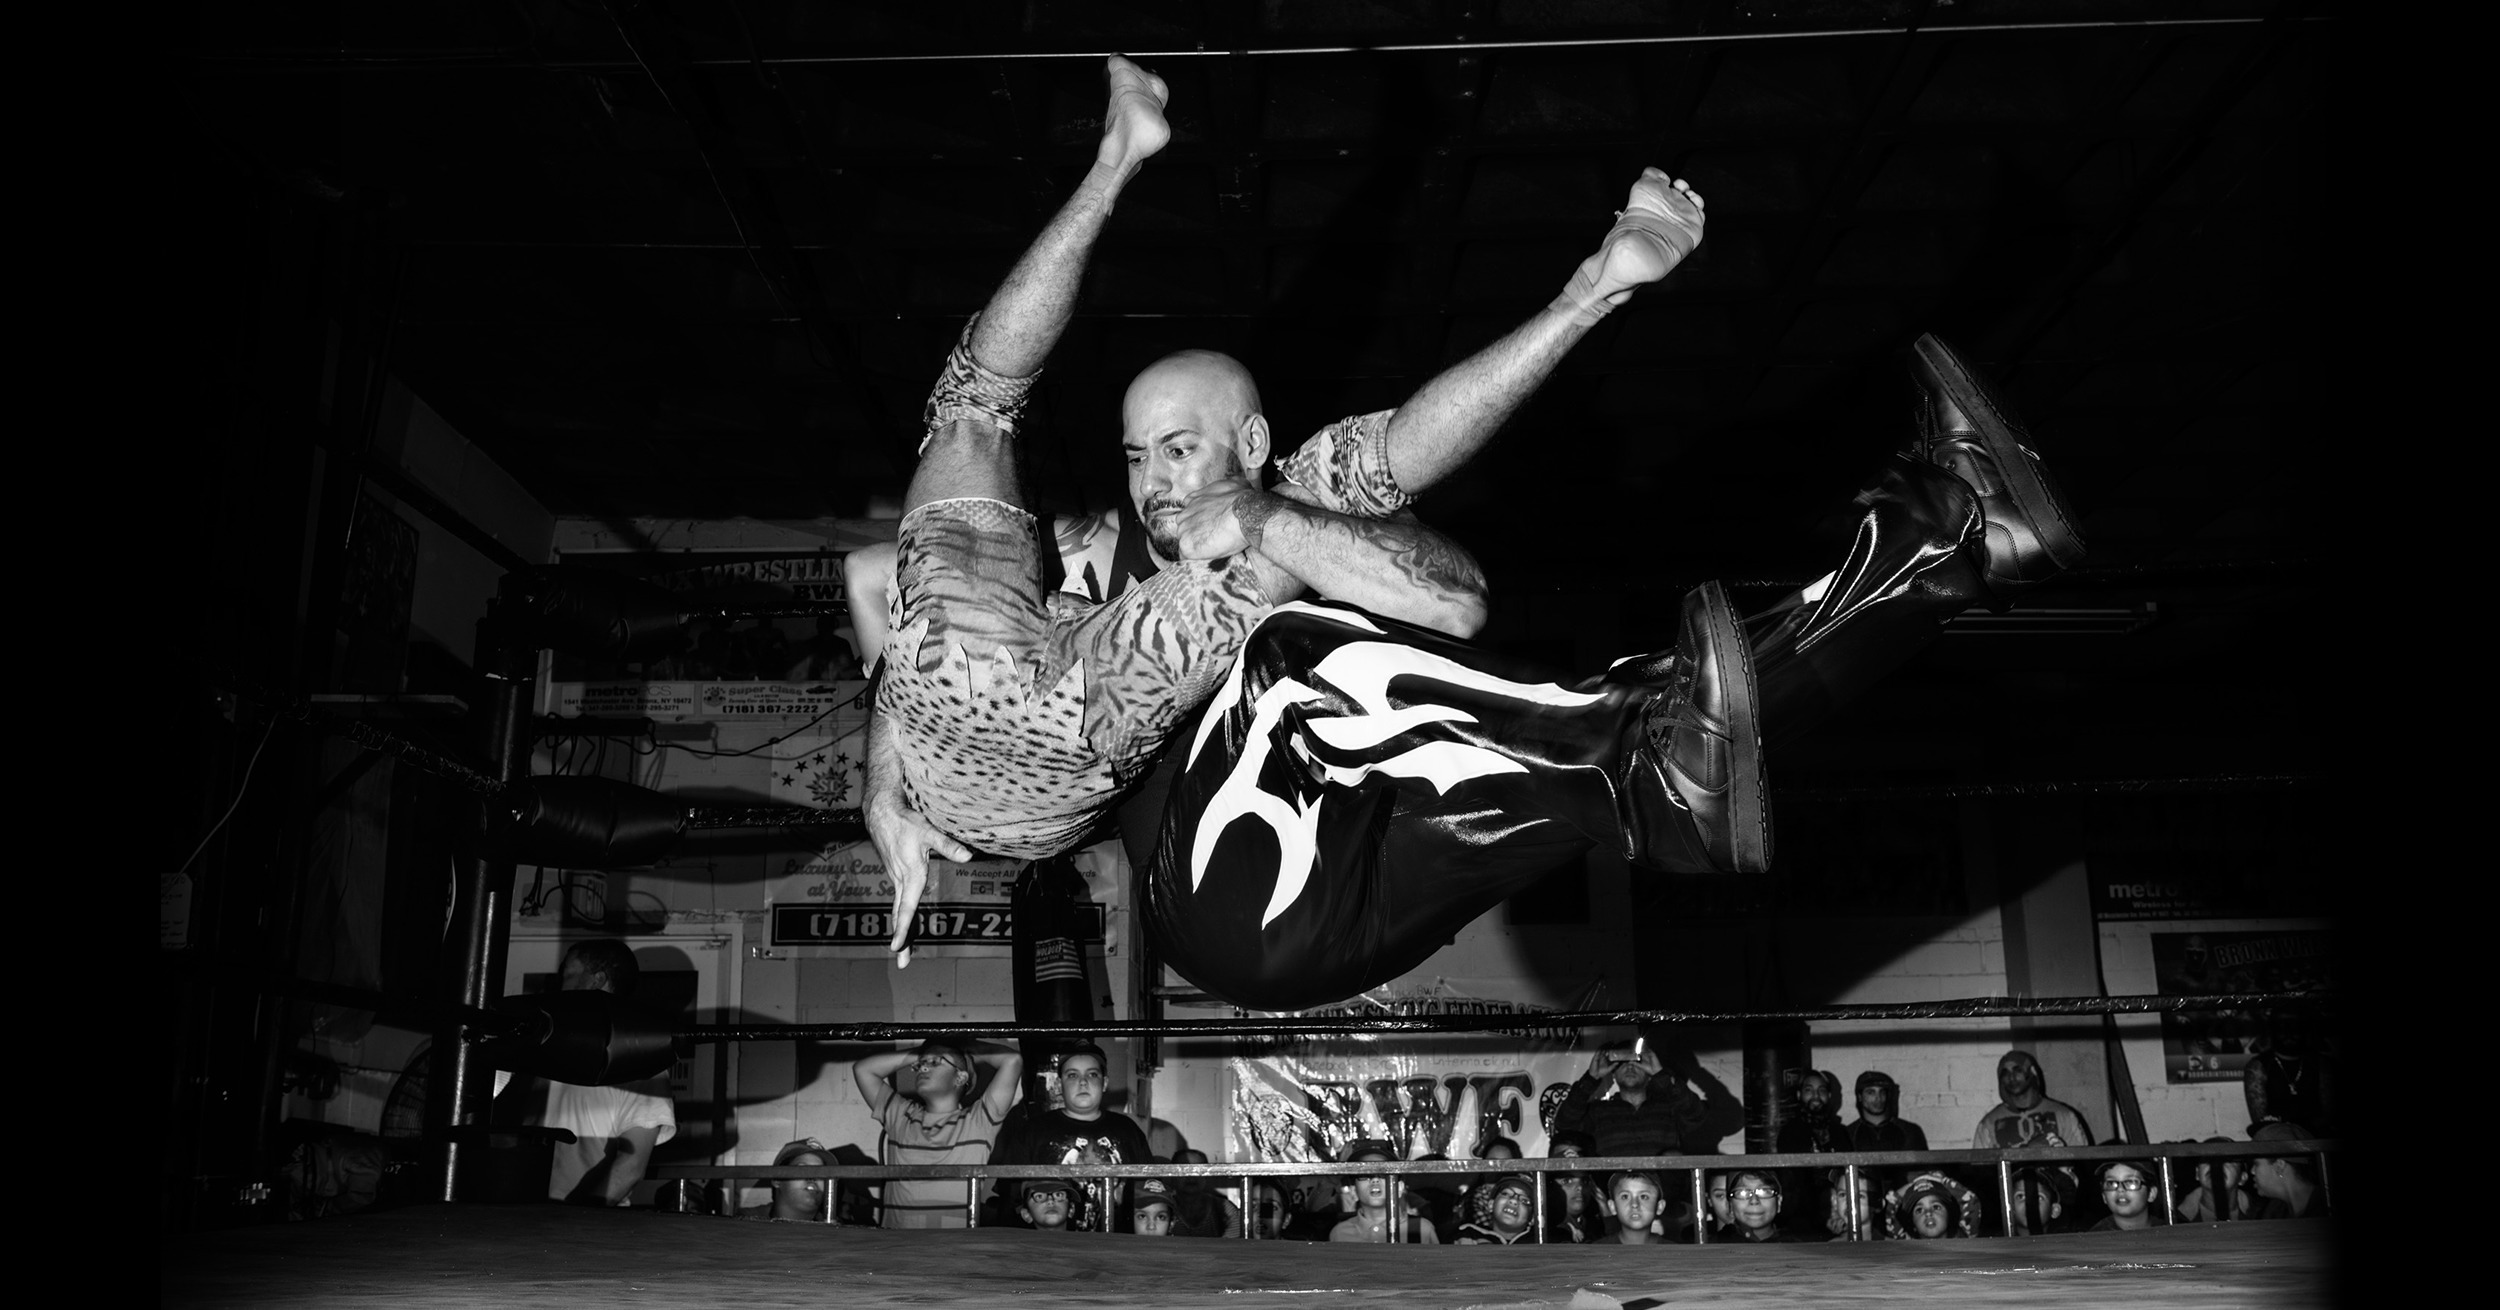 The lucha libre fighters of the Bronx